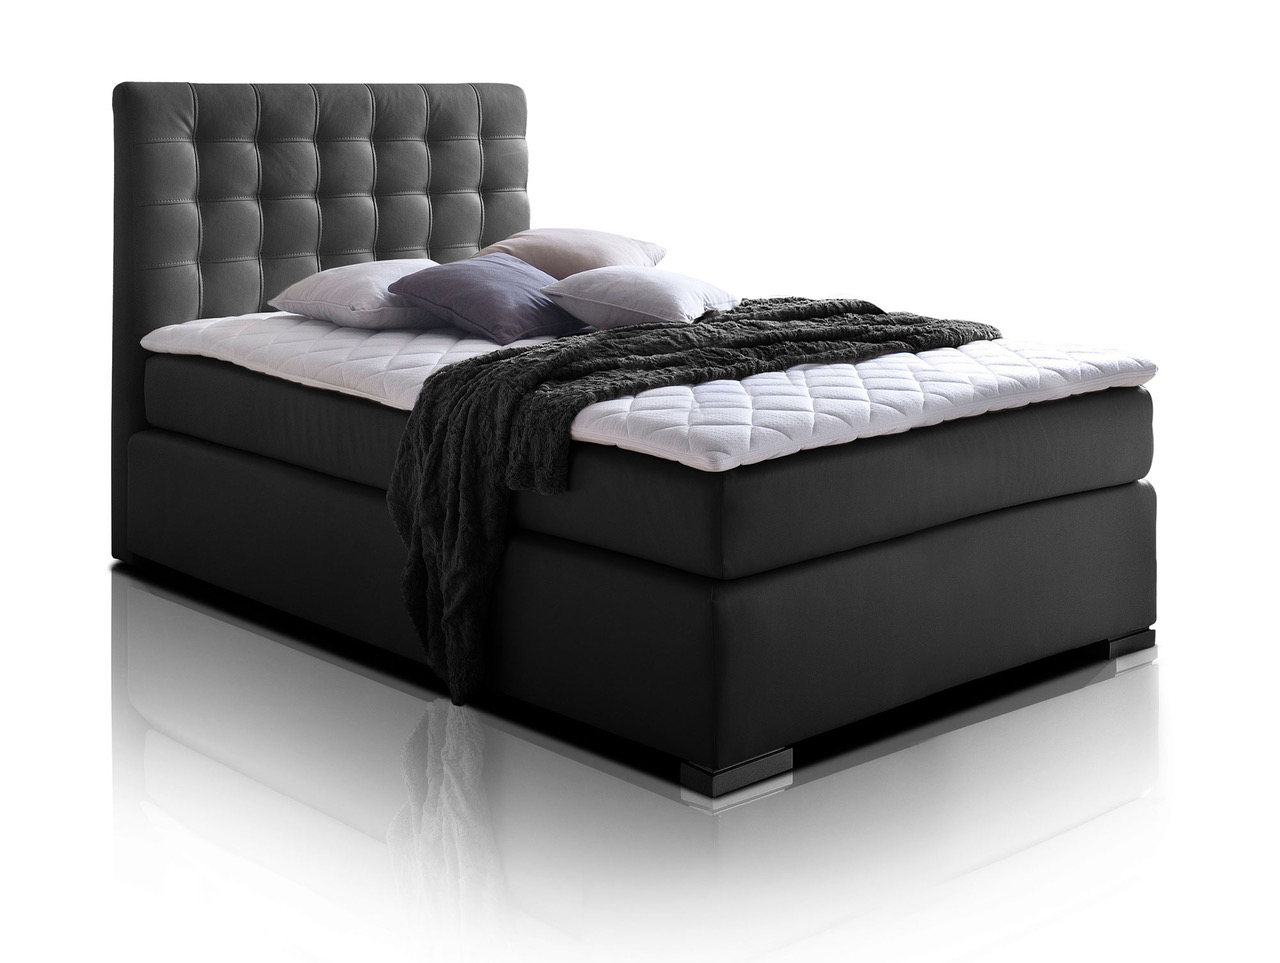 100 schlafzimmer boxspringbett komplett nett. Black Bedroom Furniture Sets. Home Design Ideas